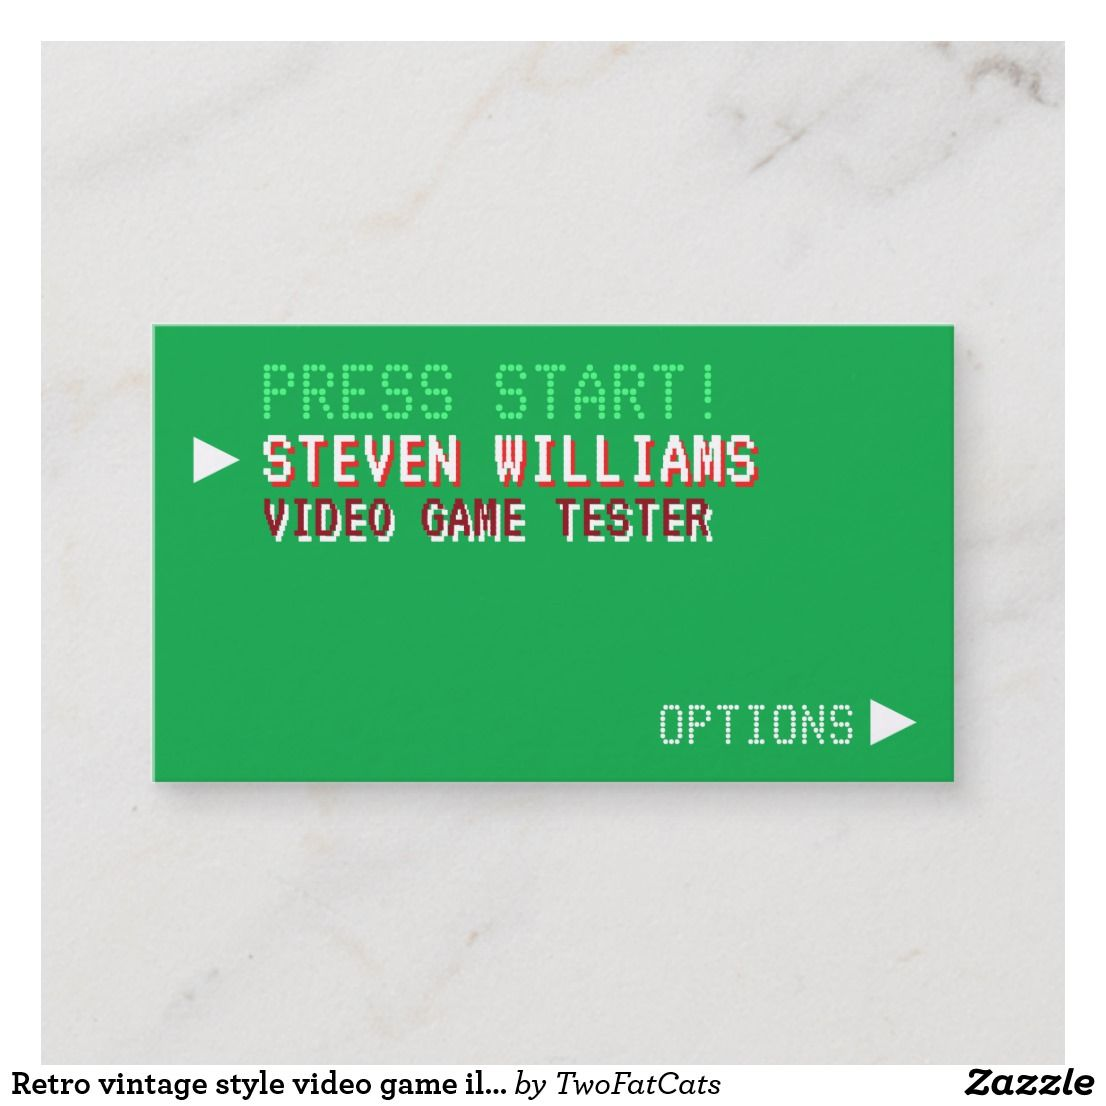 Retro Vintage Style Video Game Illustrated Business Card Zazzle Com Illustration Business Cards Business Cards Retro Retro Vintage Style